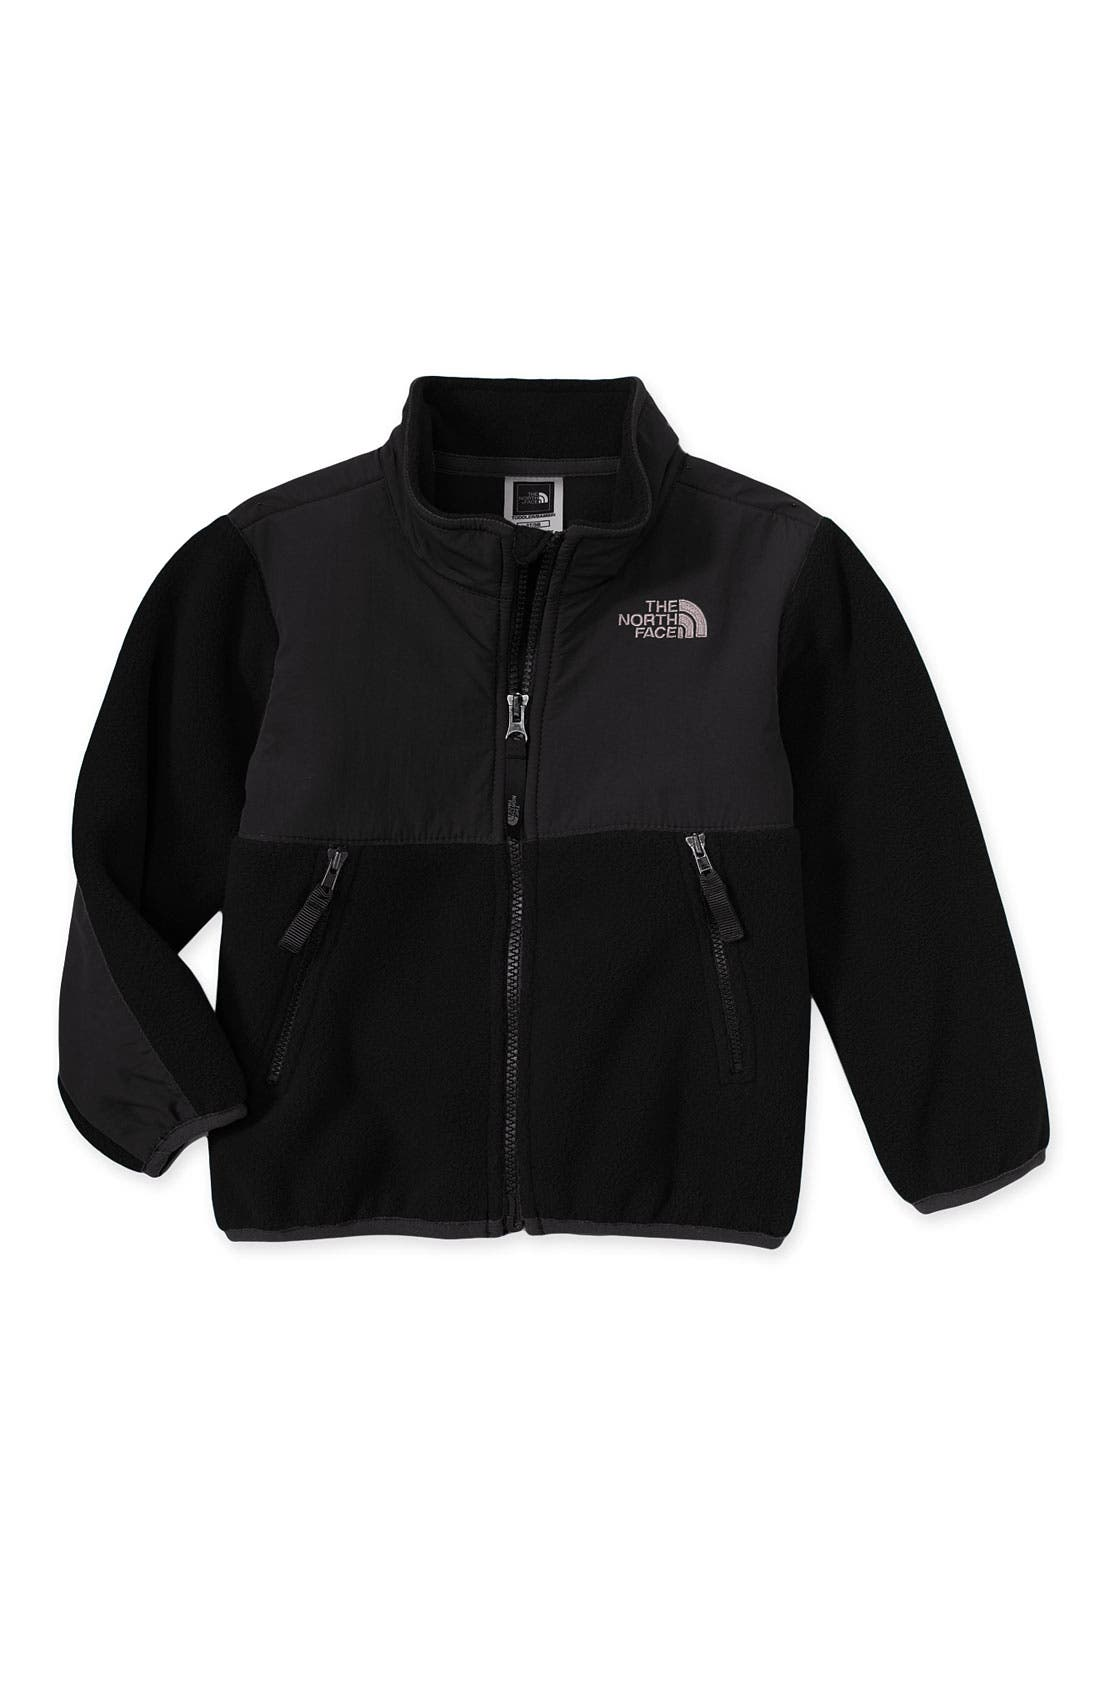 Alternate Image 1 Selected - The North Face 'Denali' Recycled Fleece Jacket (Toddler Boys)